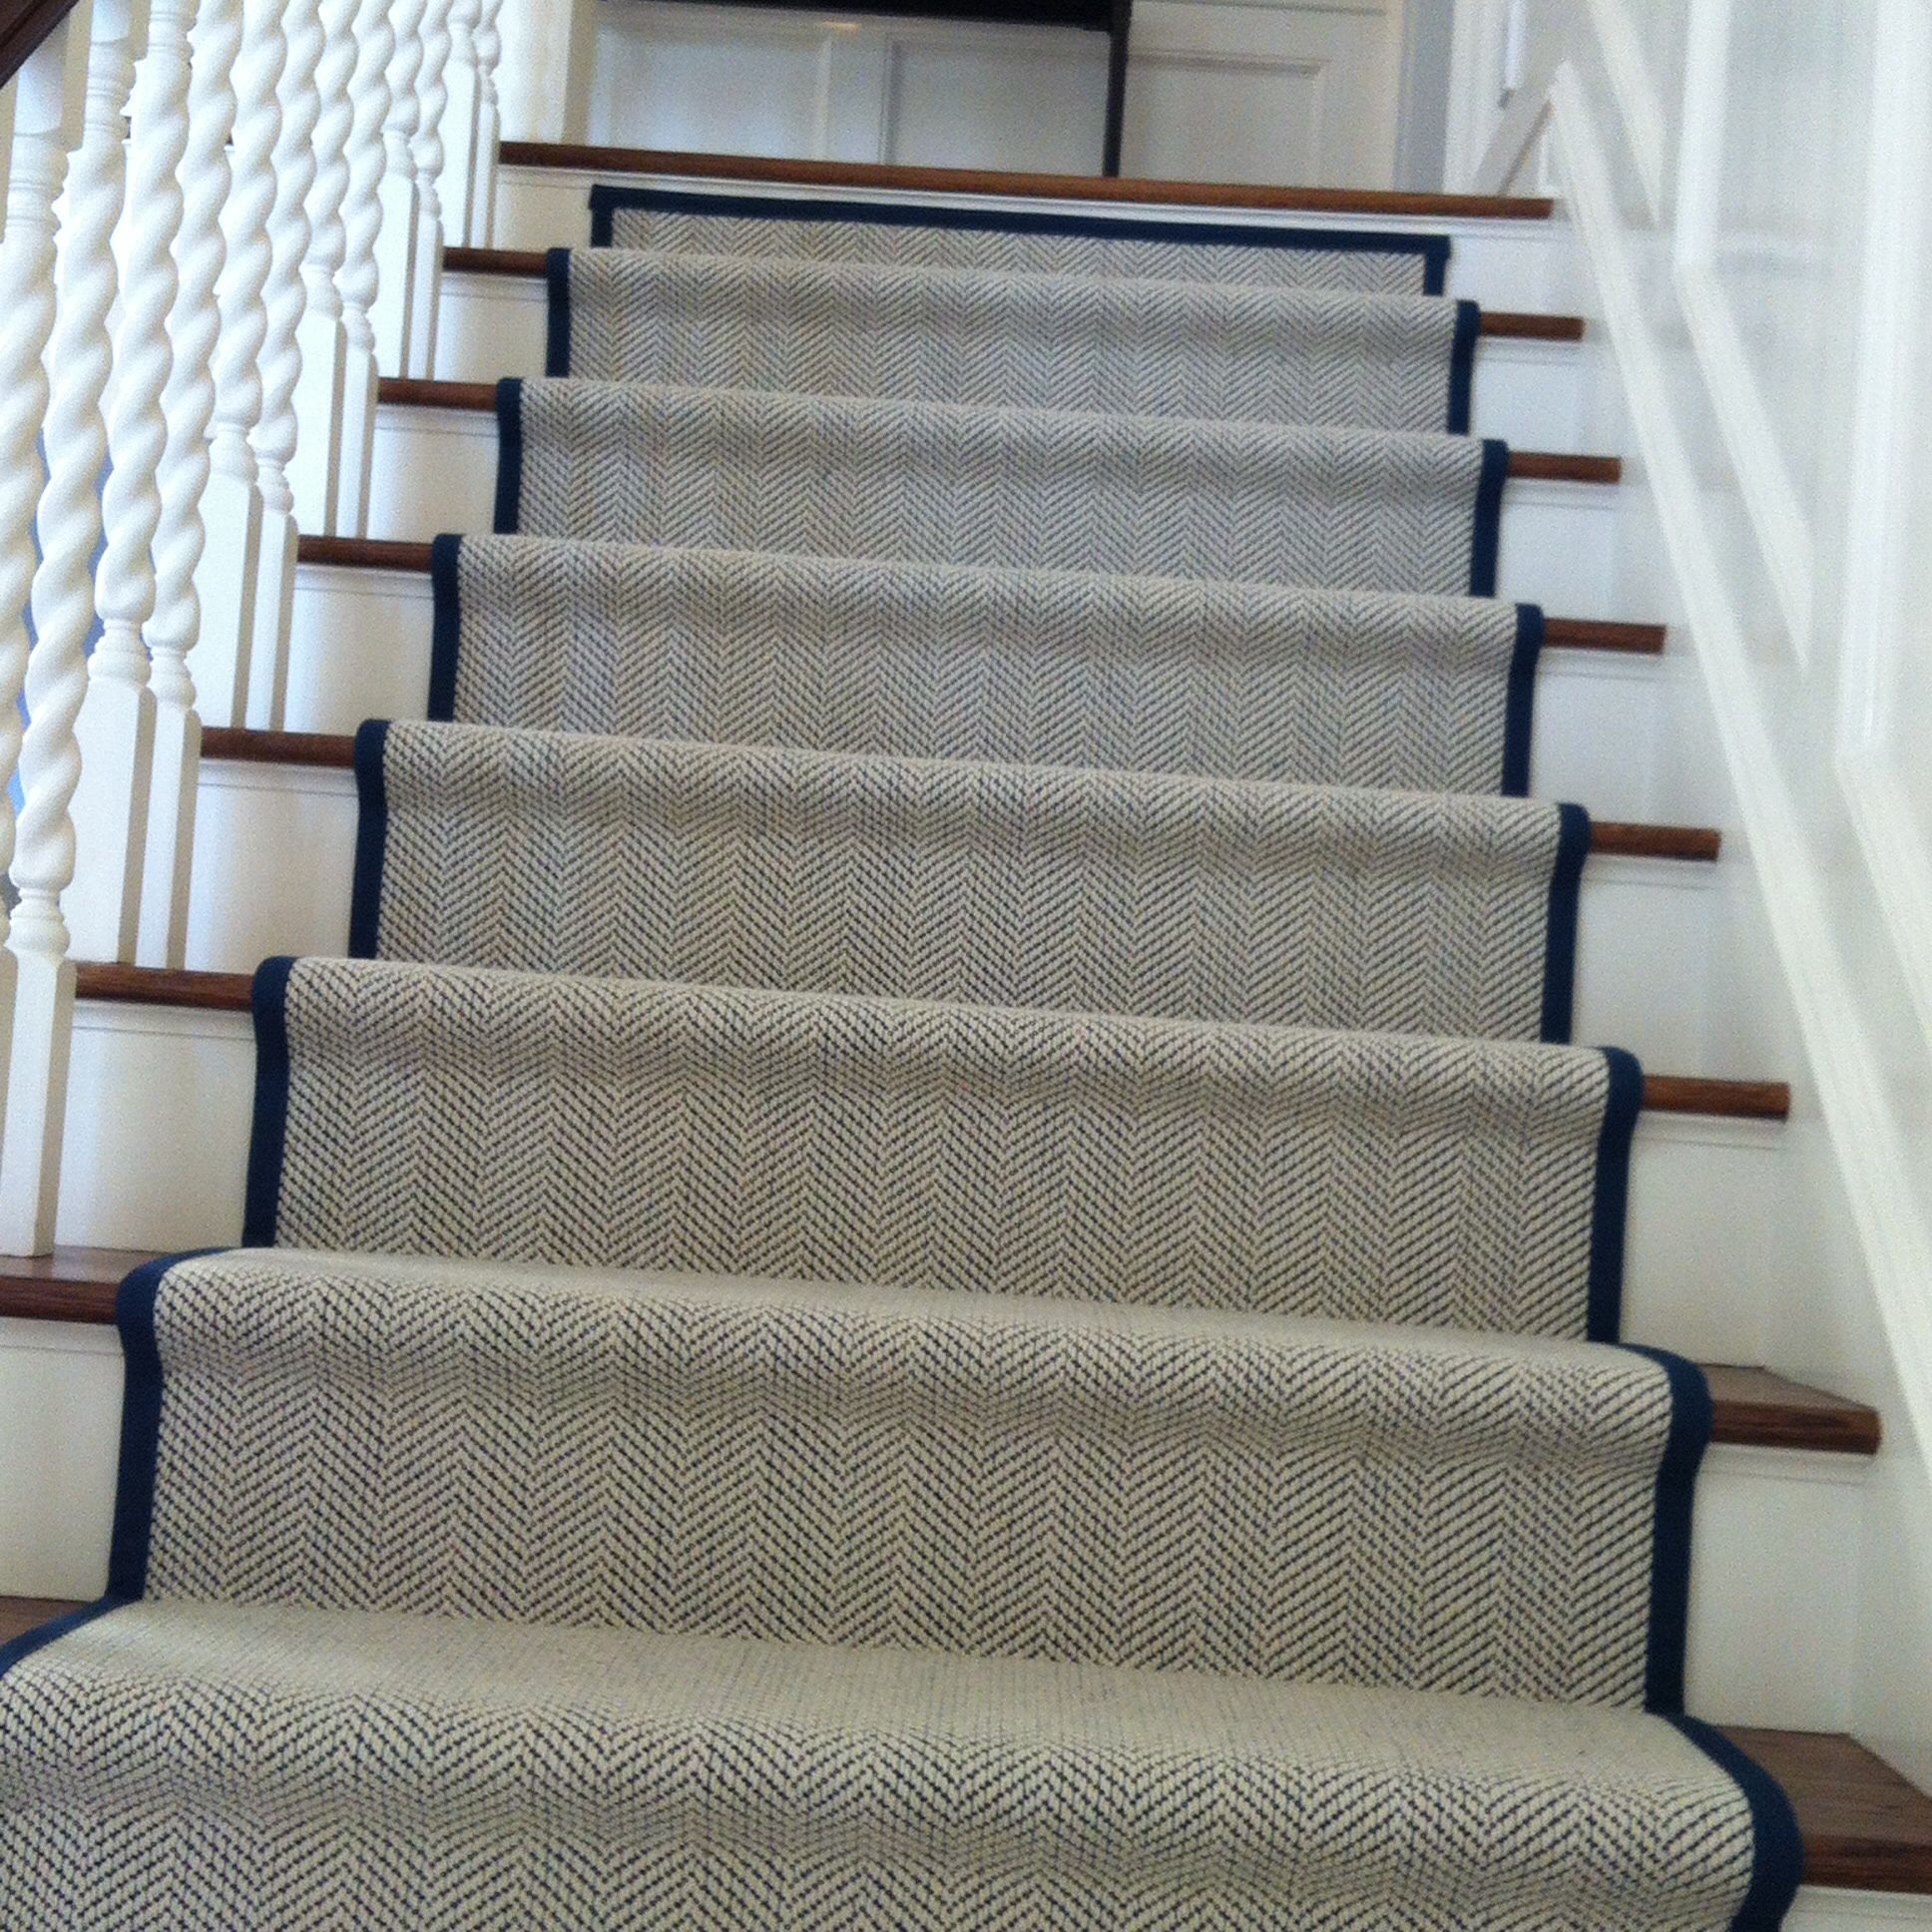 Best 25 Carpet Stair Runners Ideas On Pinterest: My New Staircase Runner. Herringbone With A Marine Blue